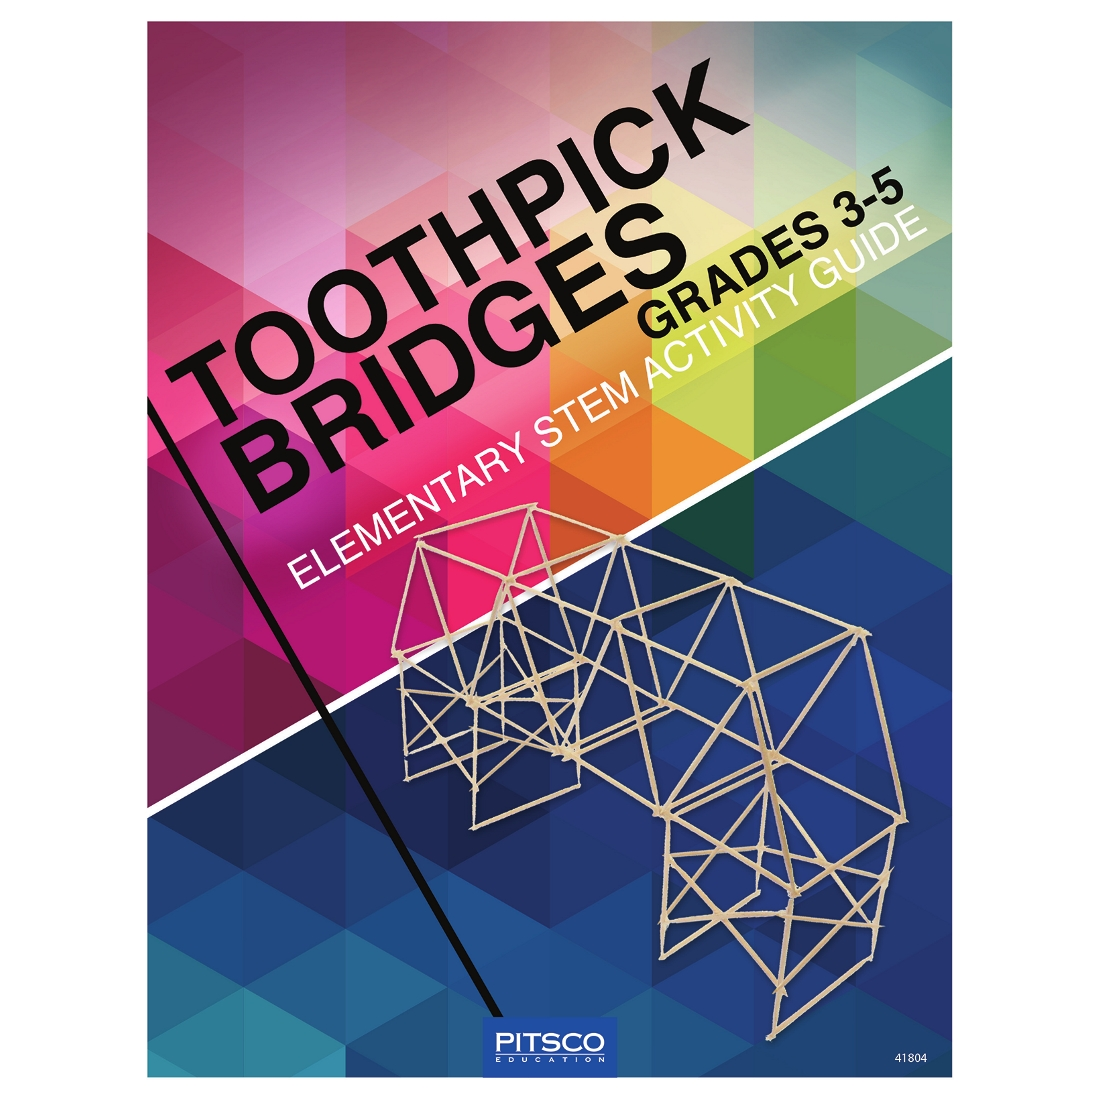 Toothpick Bridges Elementary Stem Activity Guide W41804